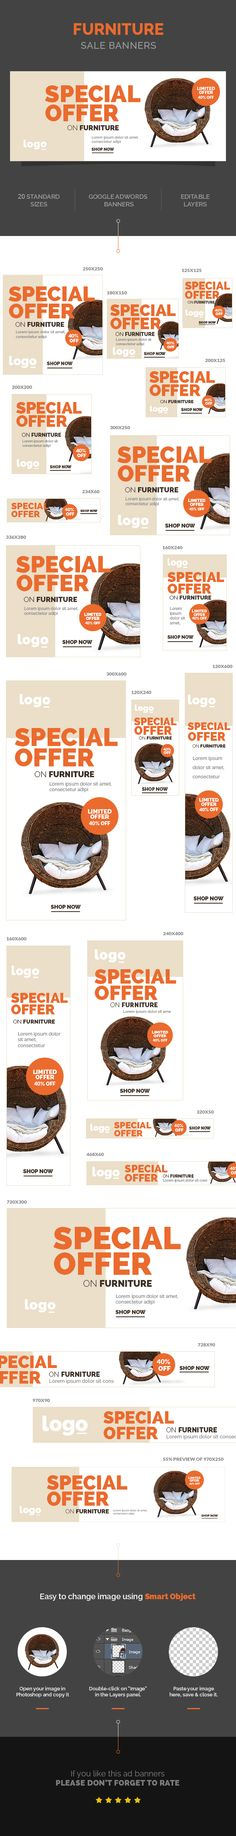 Furniture Sale Banners on Behance